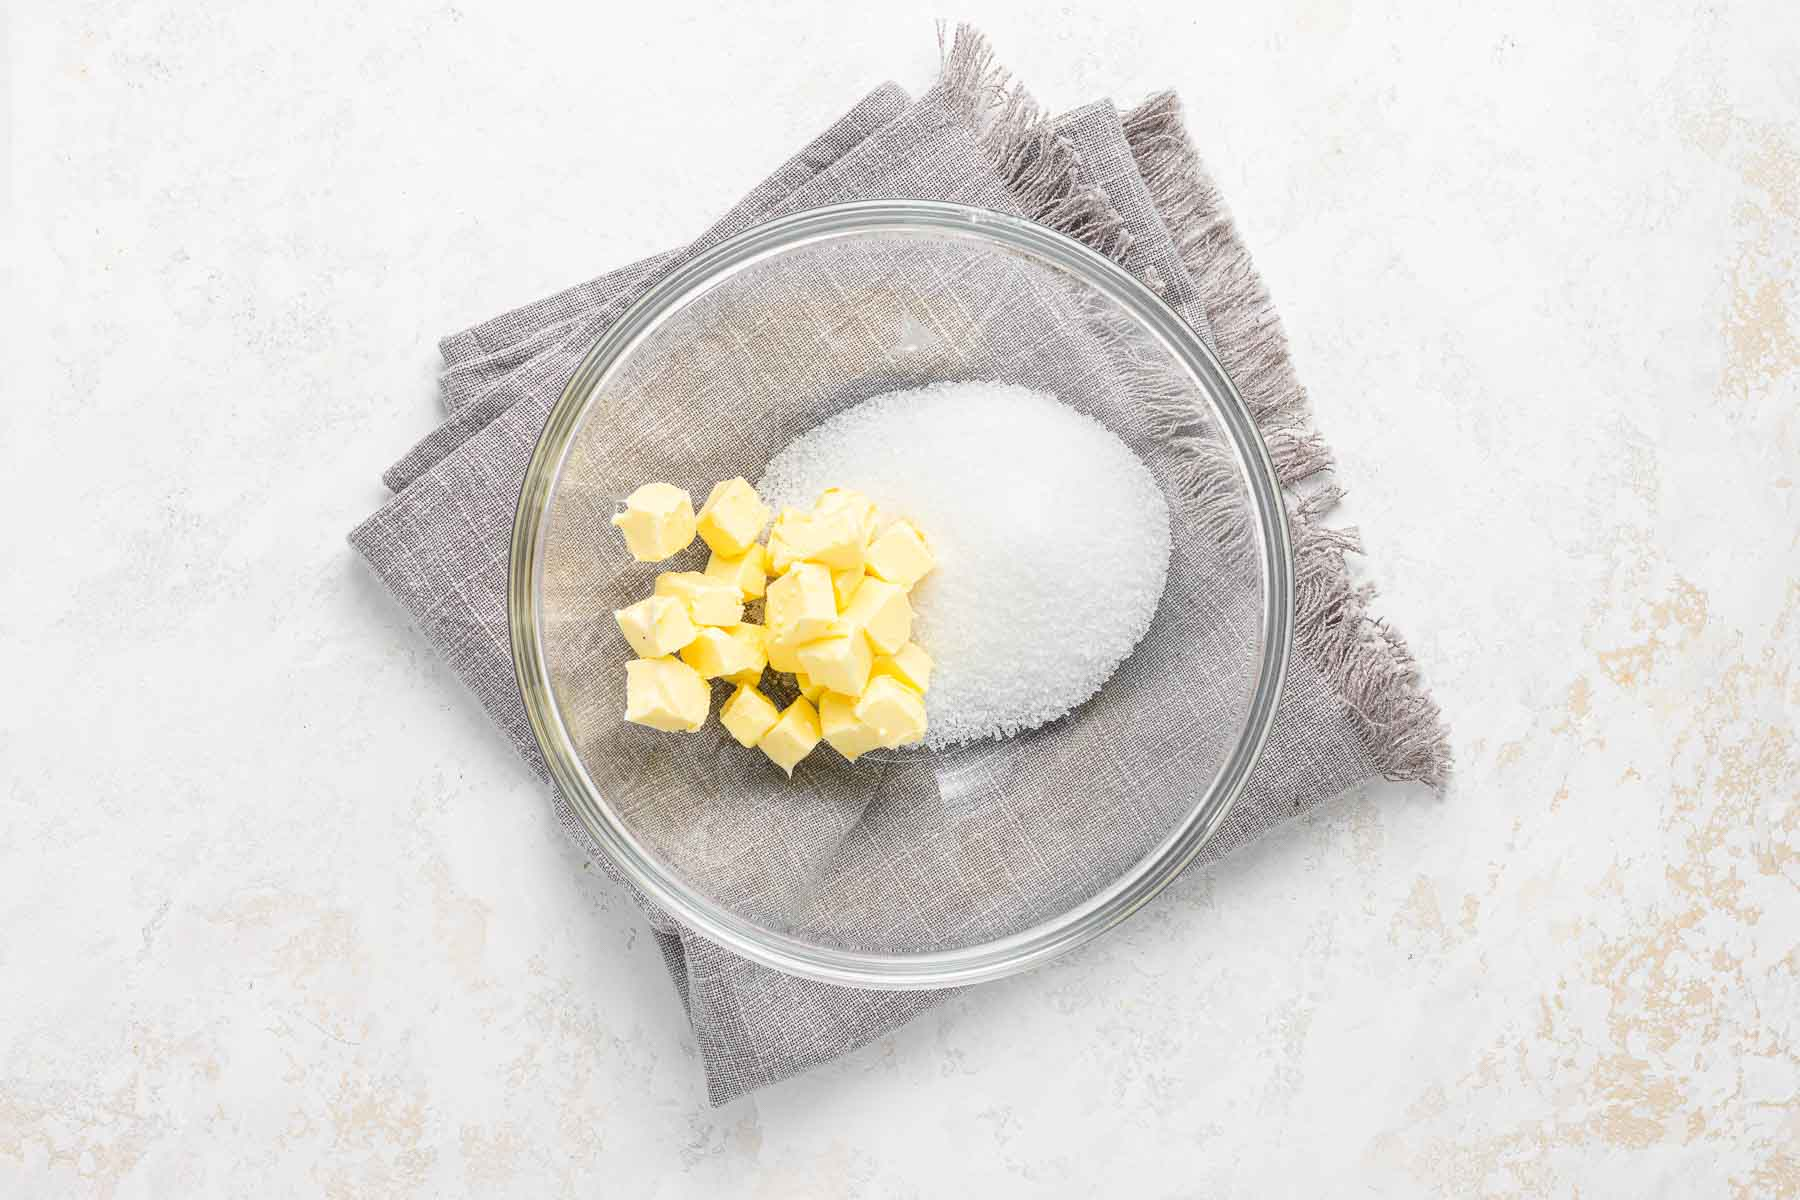 Cubed butter and sugar in a clear glass bowl.